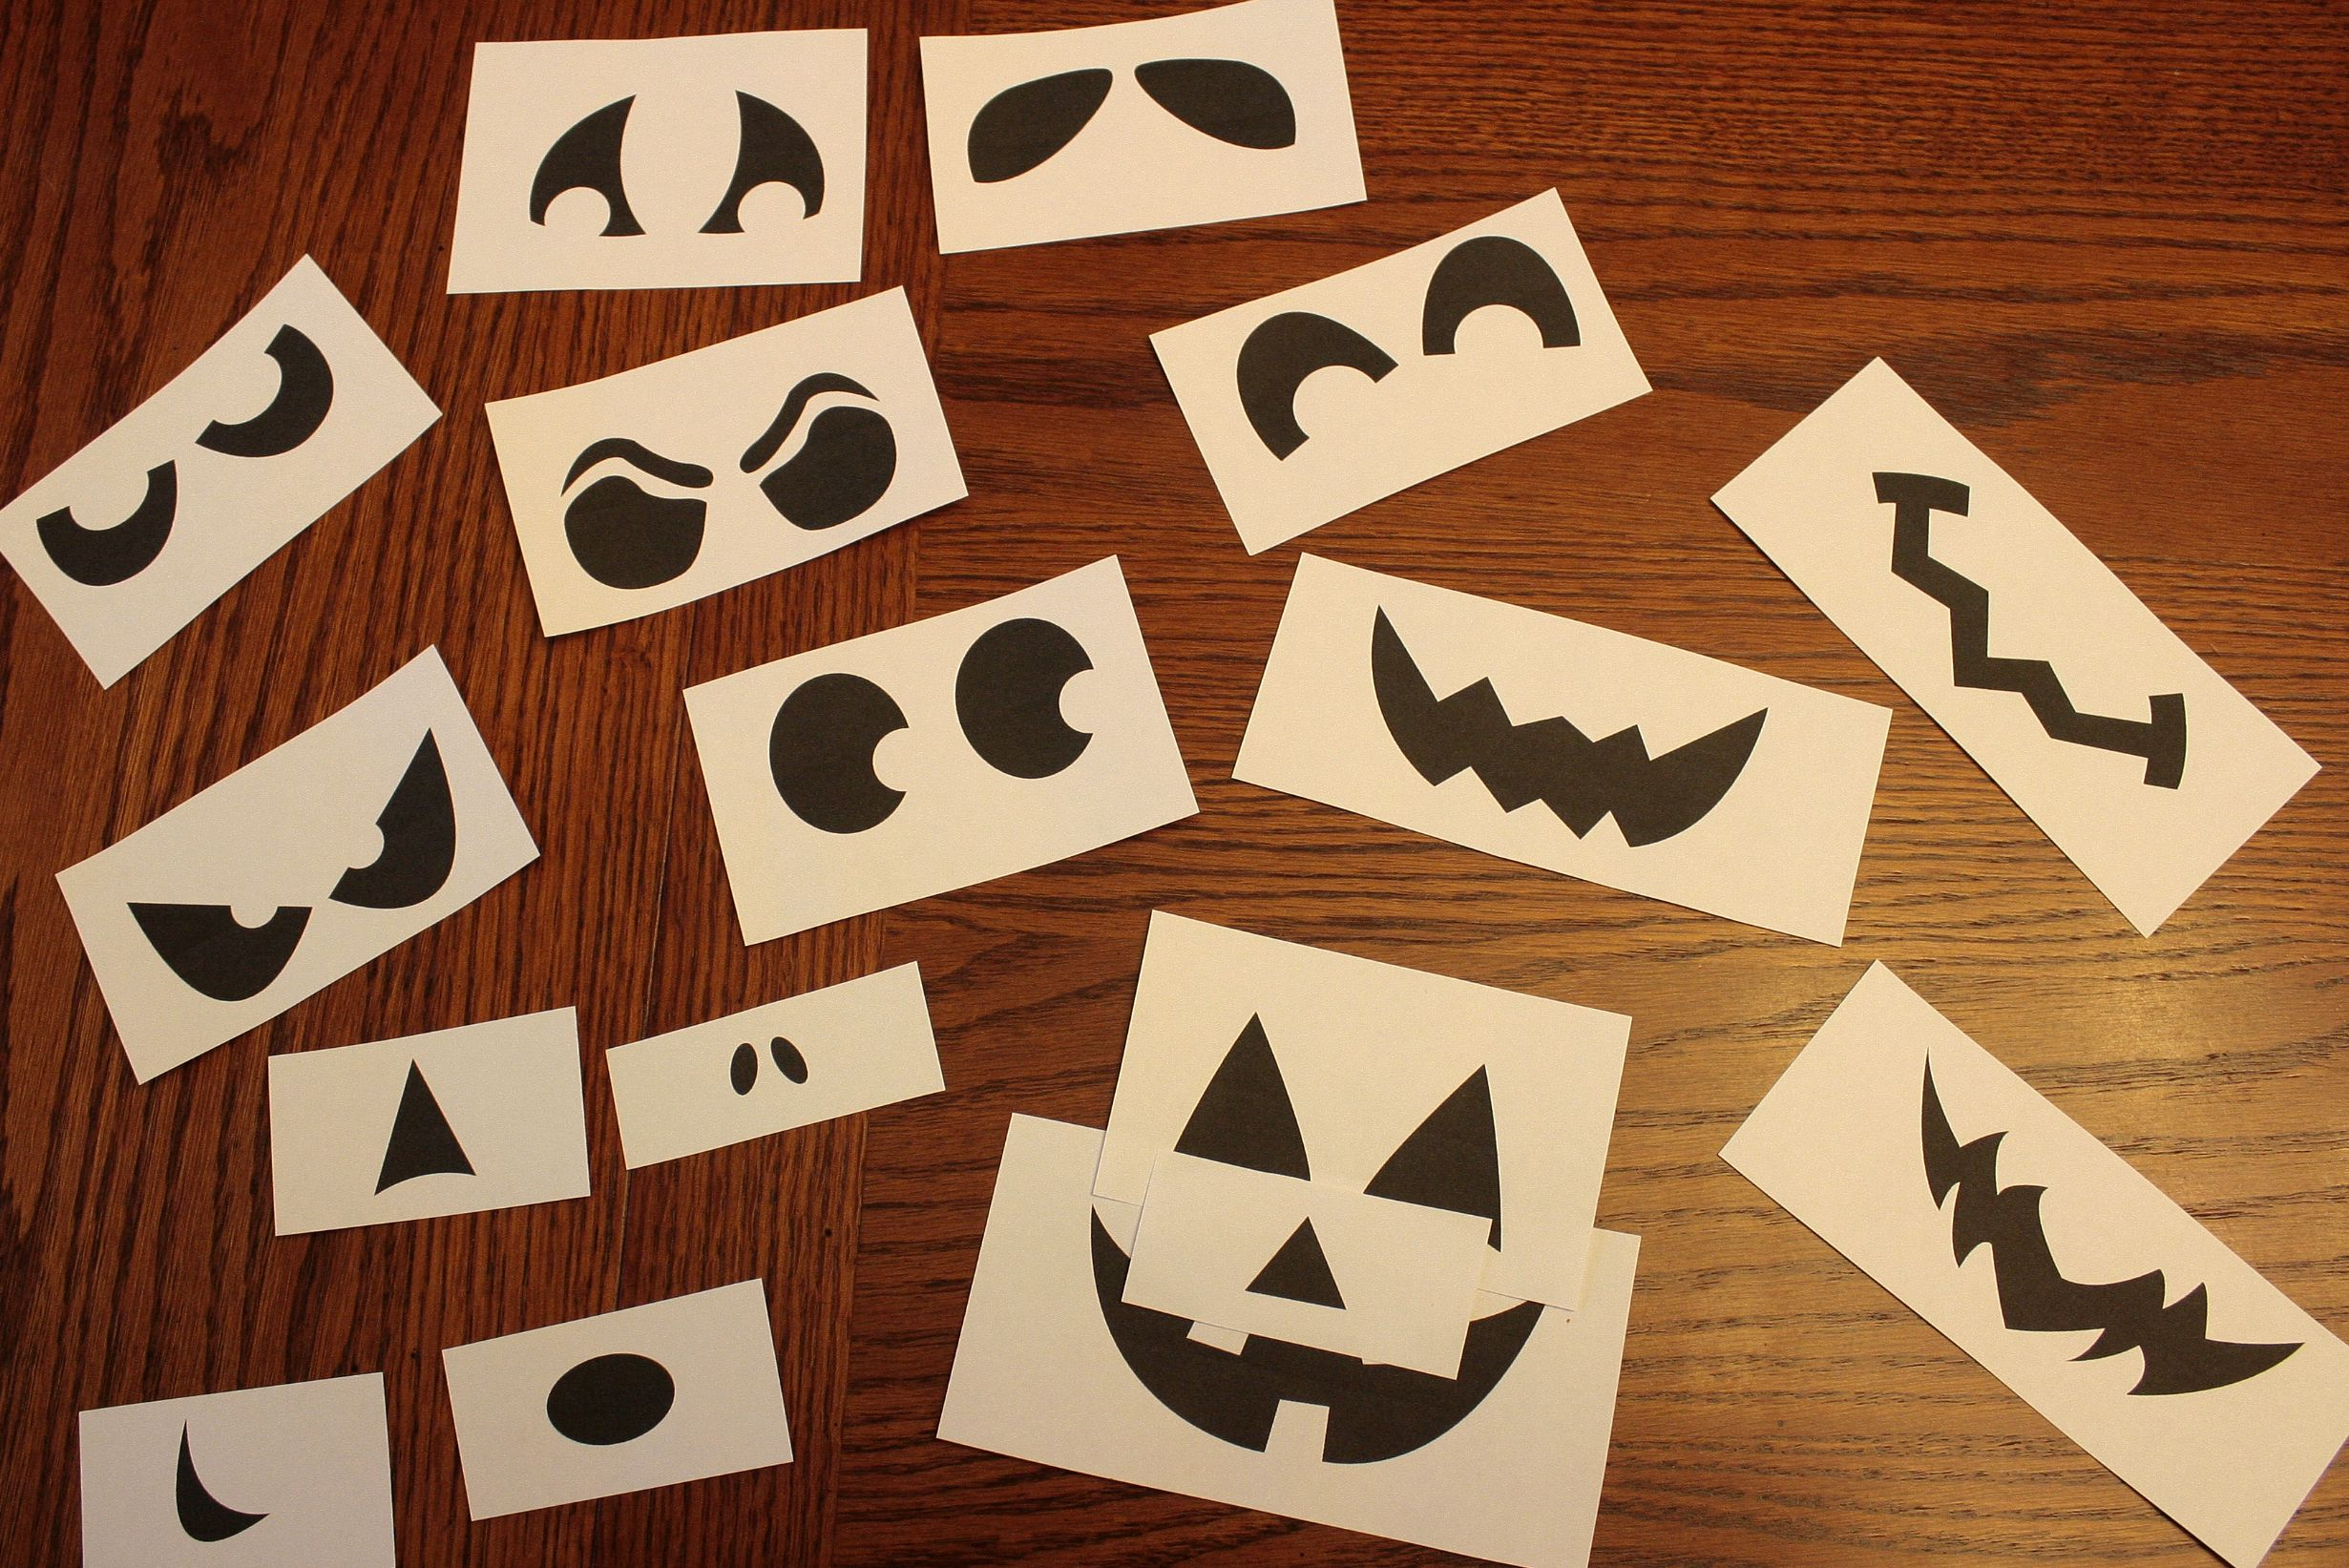 Templates For Jack O Lantern Faces